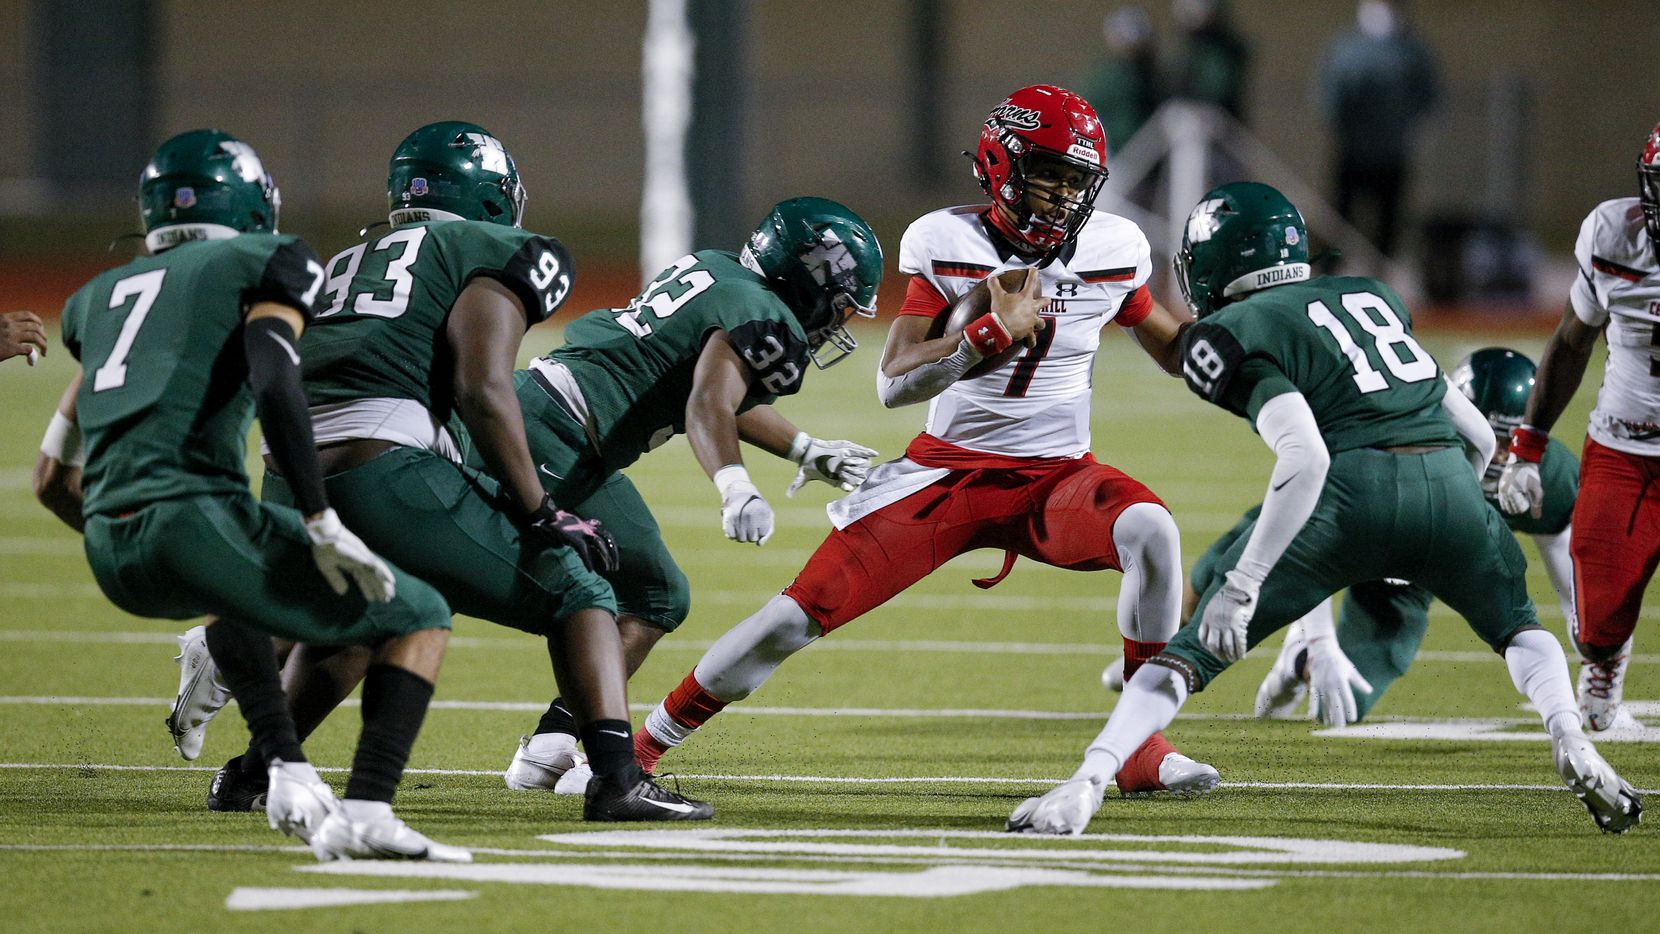 Cedar Hill senior quarterback Kaidon Salter (7) looks for room against a swarm of Waxahachie defenders during Cedar Hill's 35-10 win Friday. (Brandon Wade/Special Contributor)